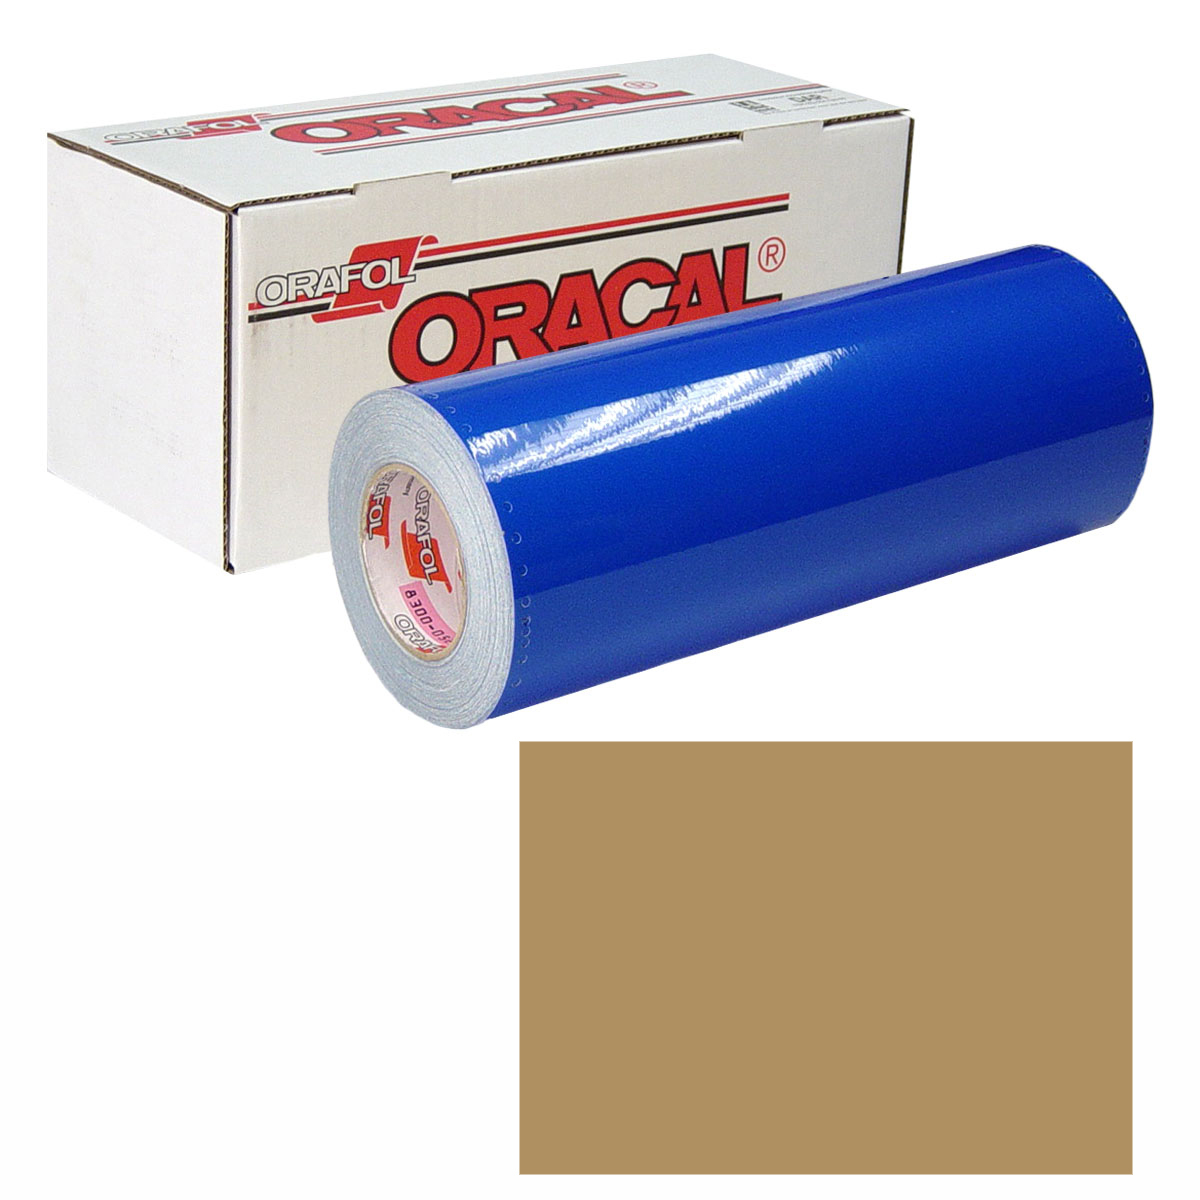 ORACAL 631 Unp 48In X 10Yd 091 Gold Met